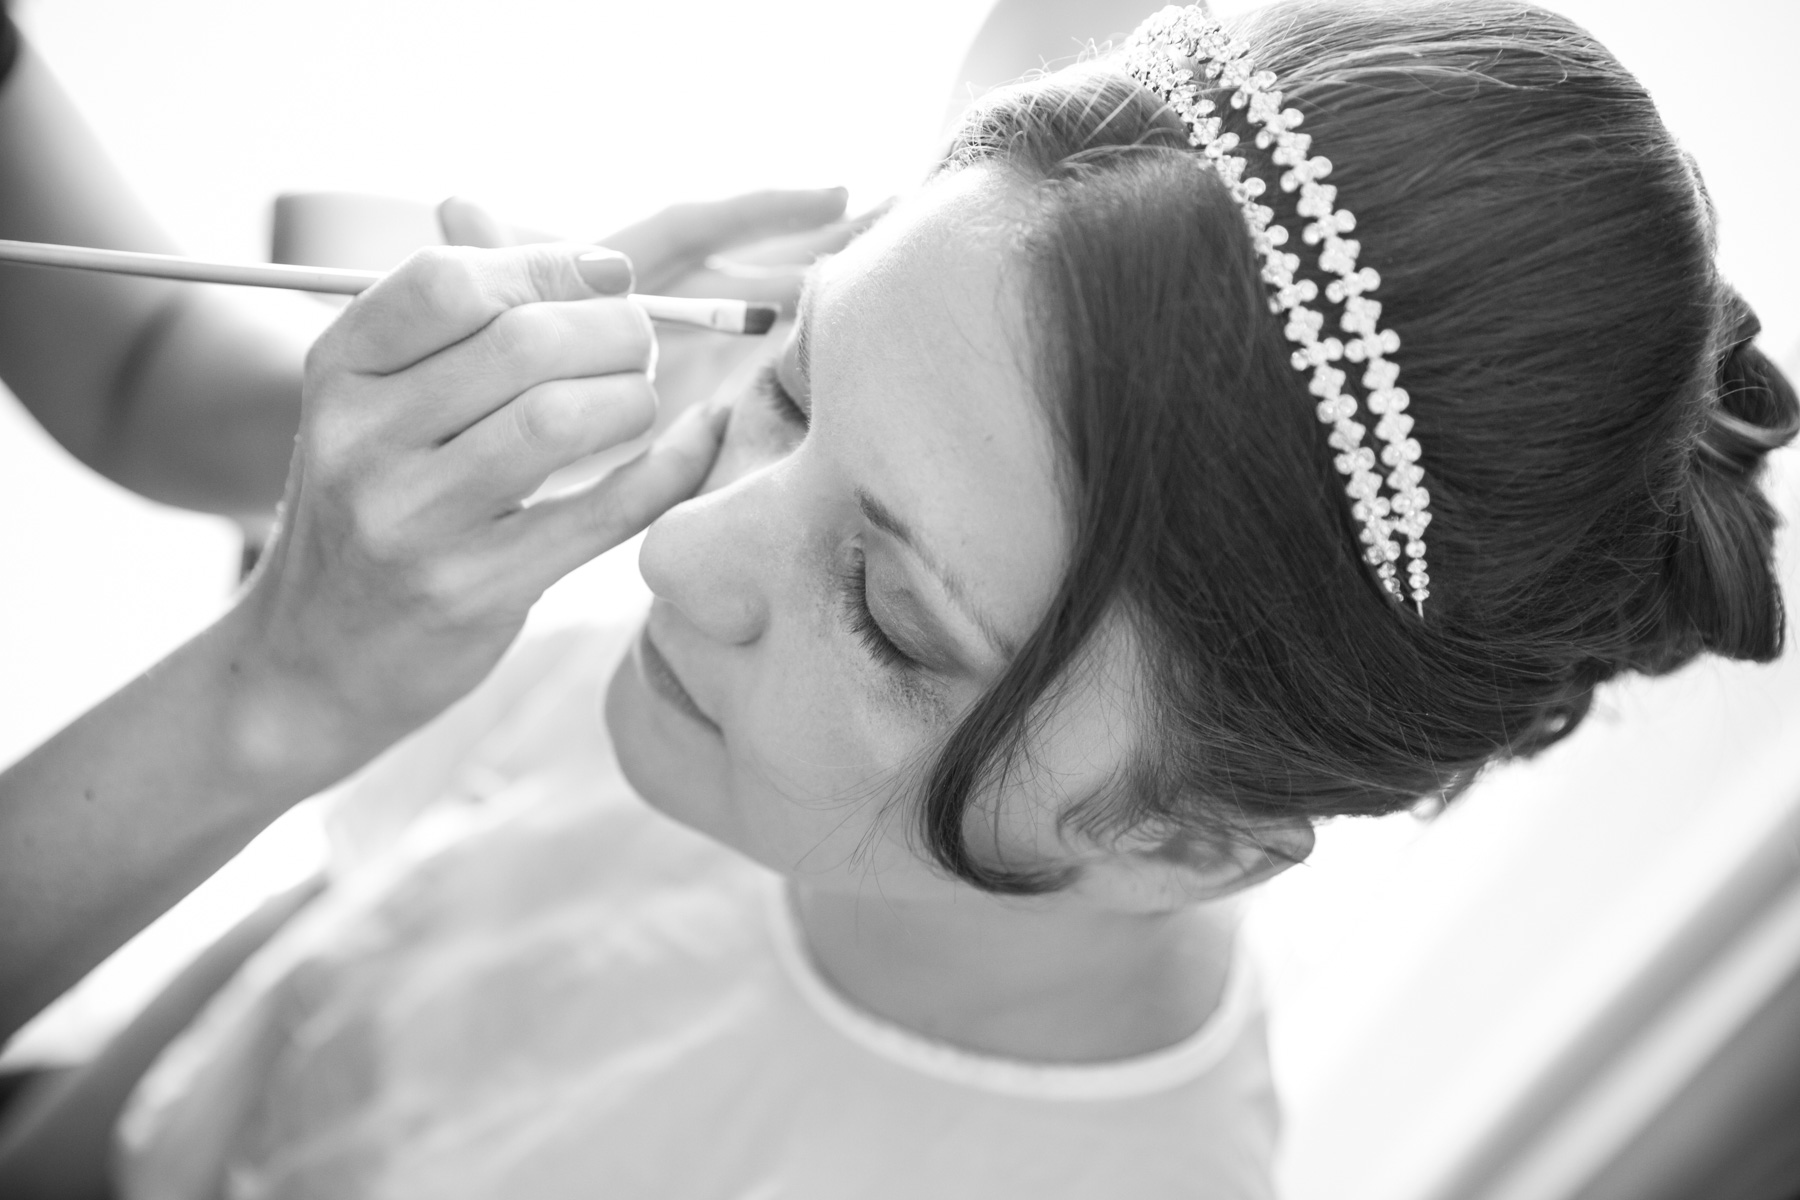 Beautiful Sussex Wedding Photography at Buxted Park Hotel by Richard Murgatroyd